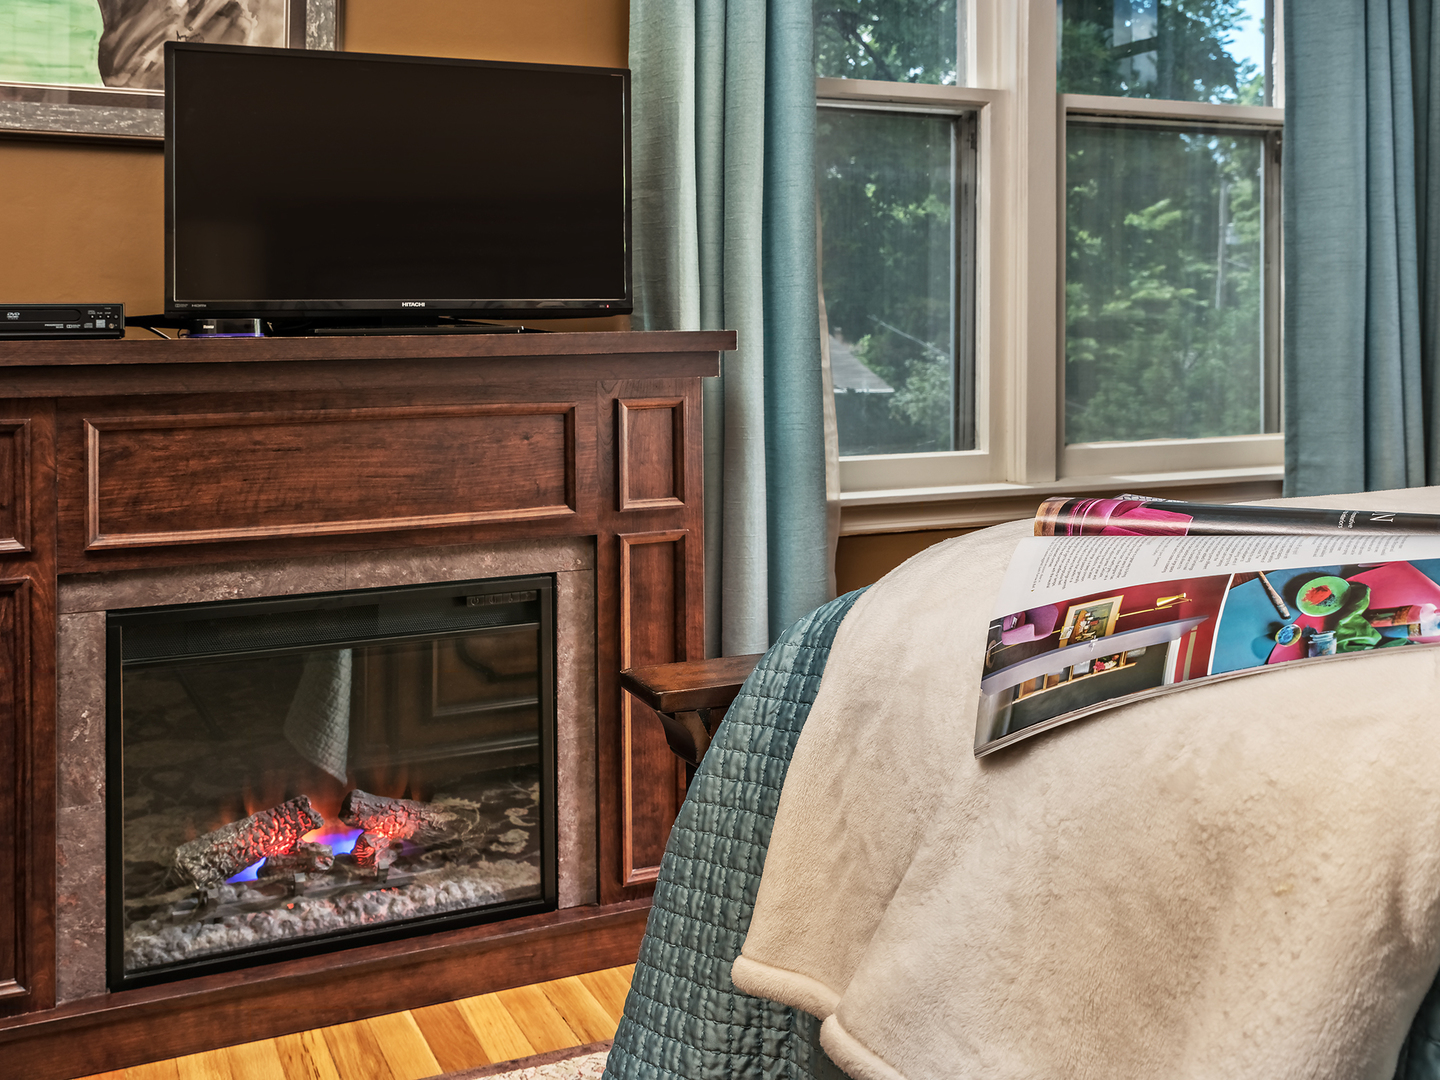 A fire place sitting in a living room with a fireplace at Silver Heart Inn & Cottages.